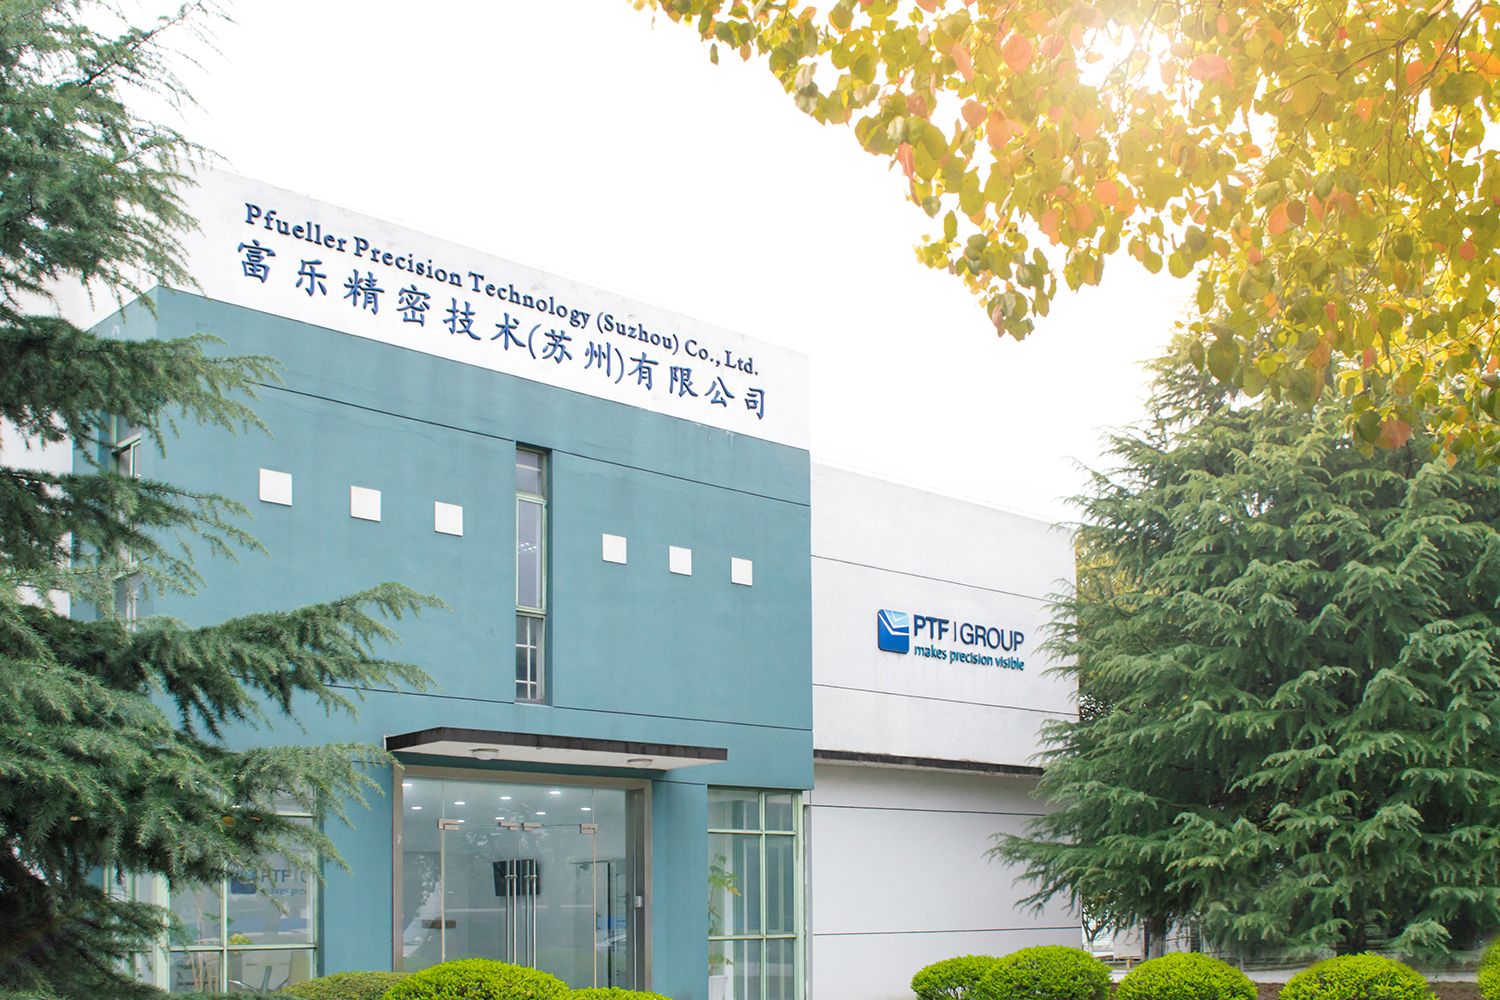 ptfgroup.com – Pfueller Precision Technology (Suzhou) Co., Ltd.